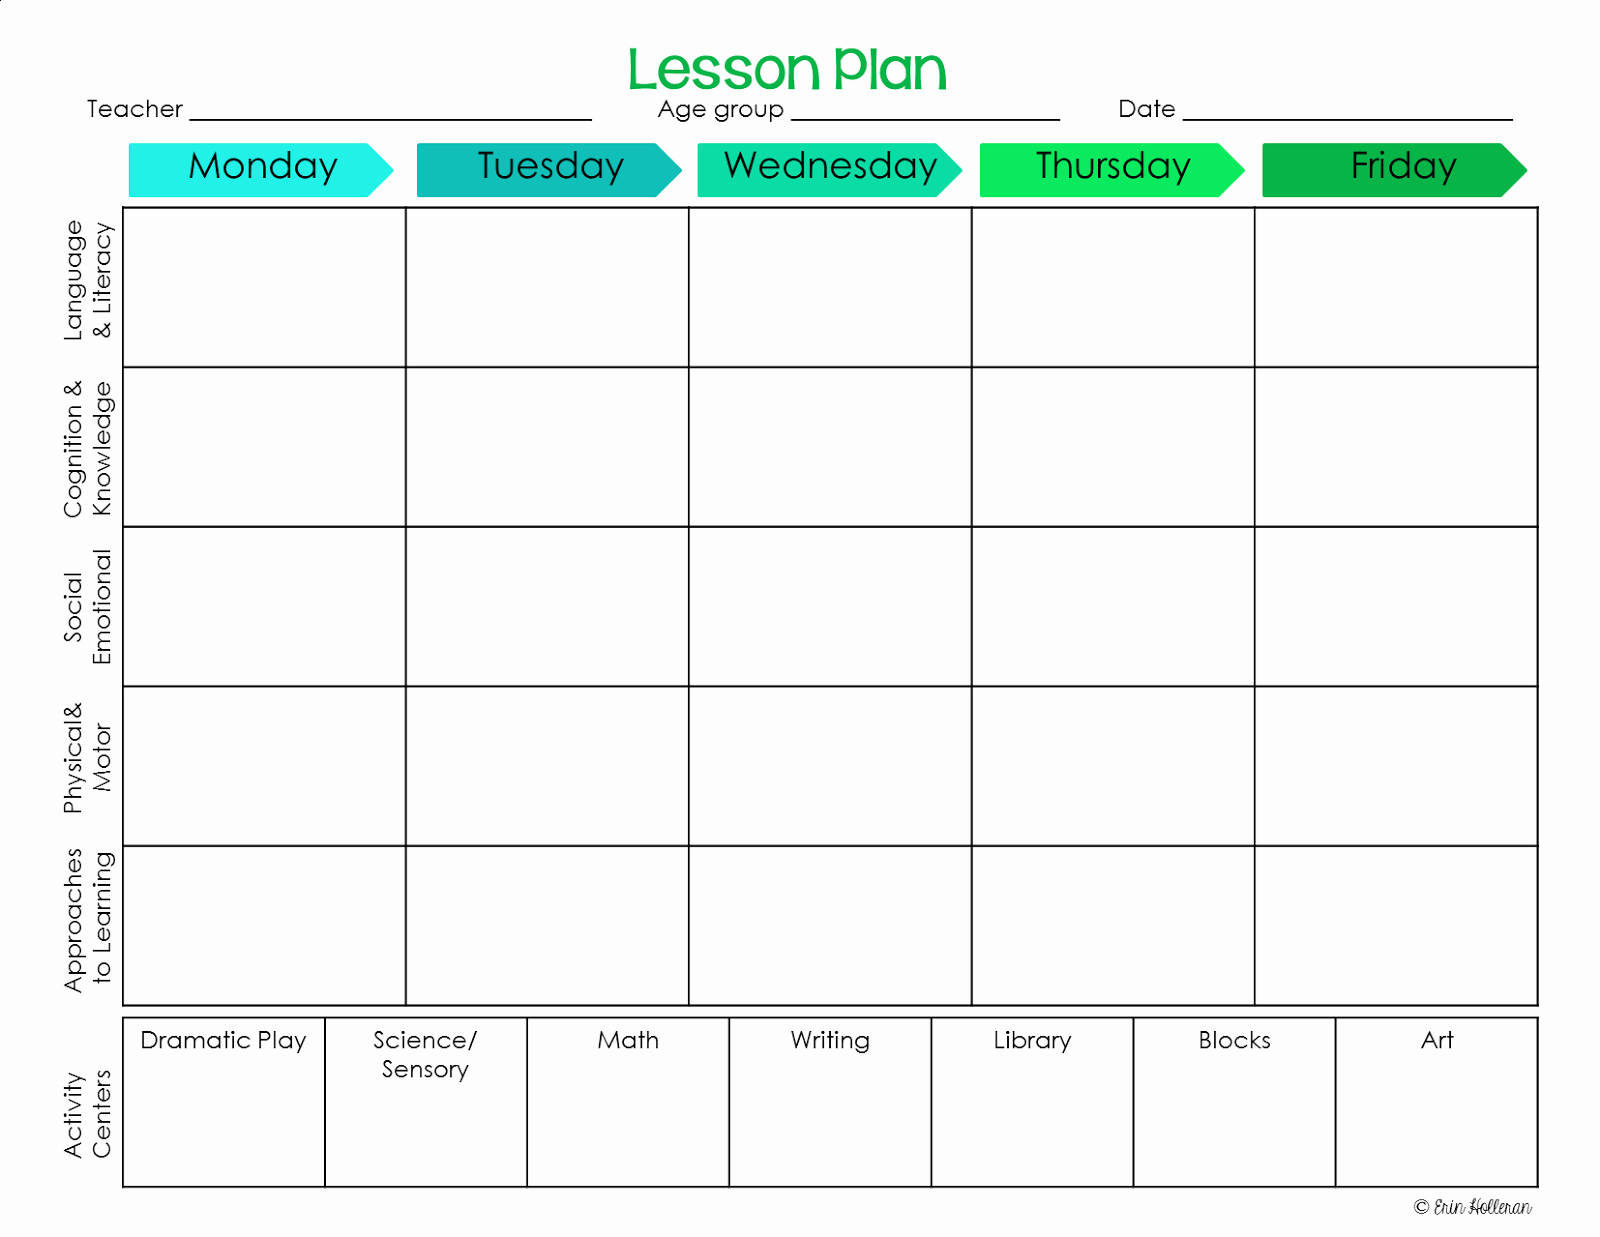 Preschool Lesson Plan Templates Best Of Preschool Ponderings Make Your Lesson Plans Work for You